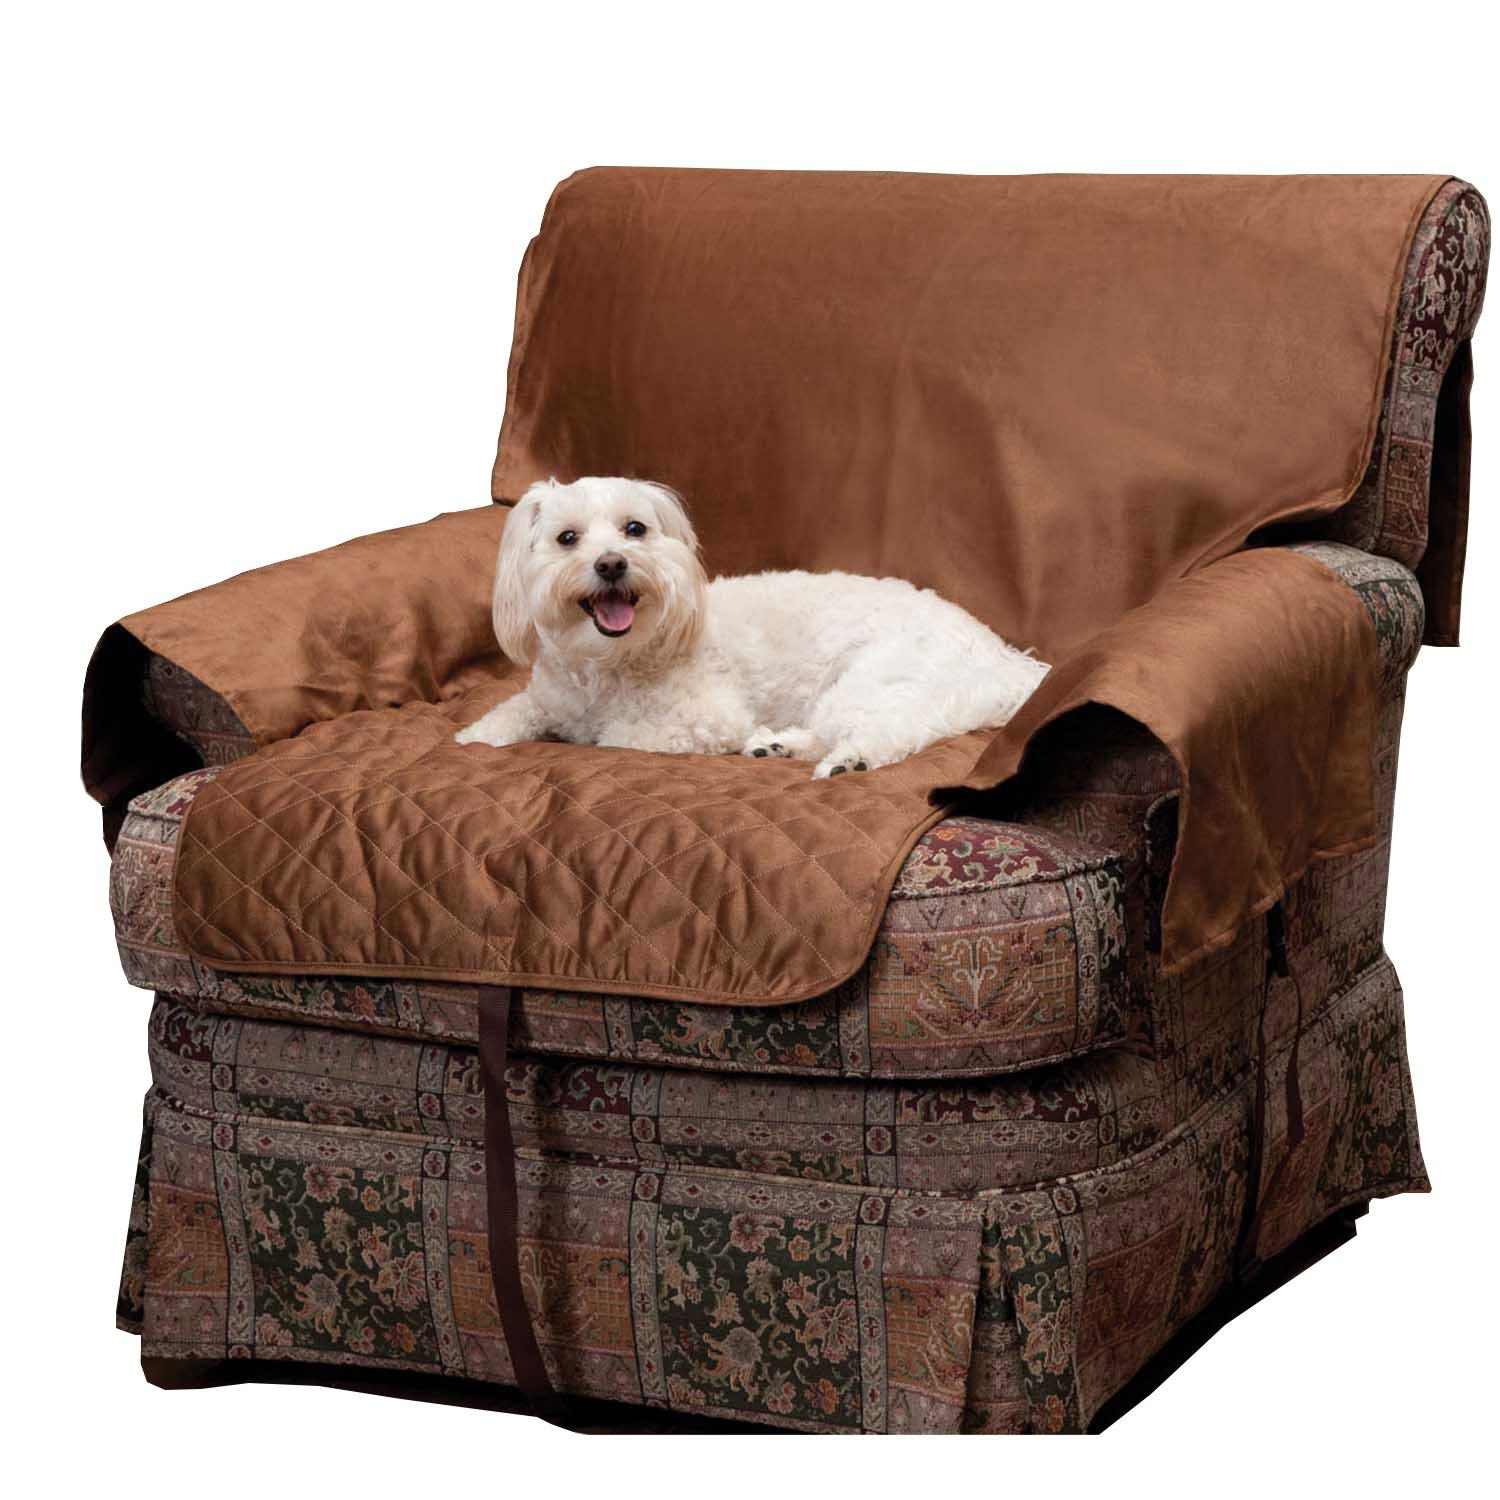 Sta-Put Full Fit Dog Furniture Protector by PetSafe - Cocoa